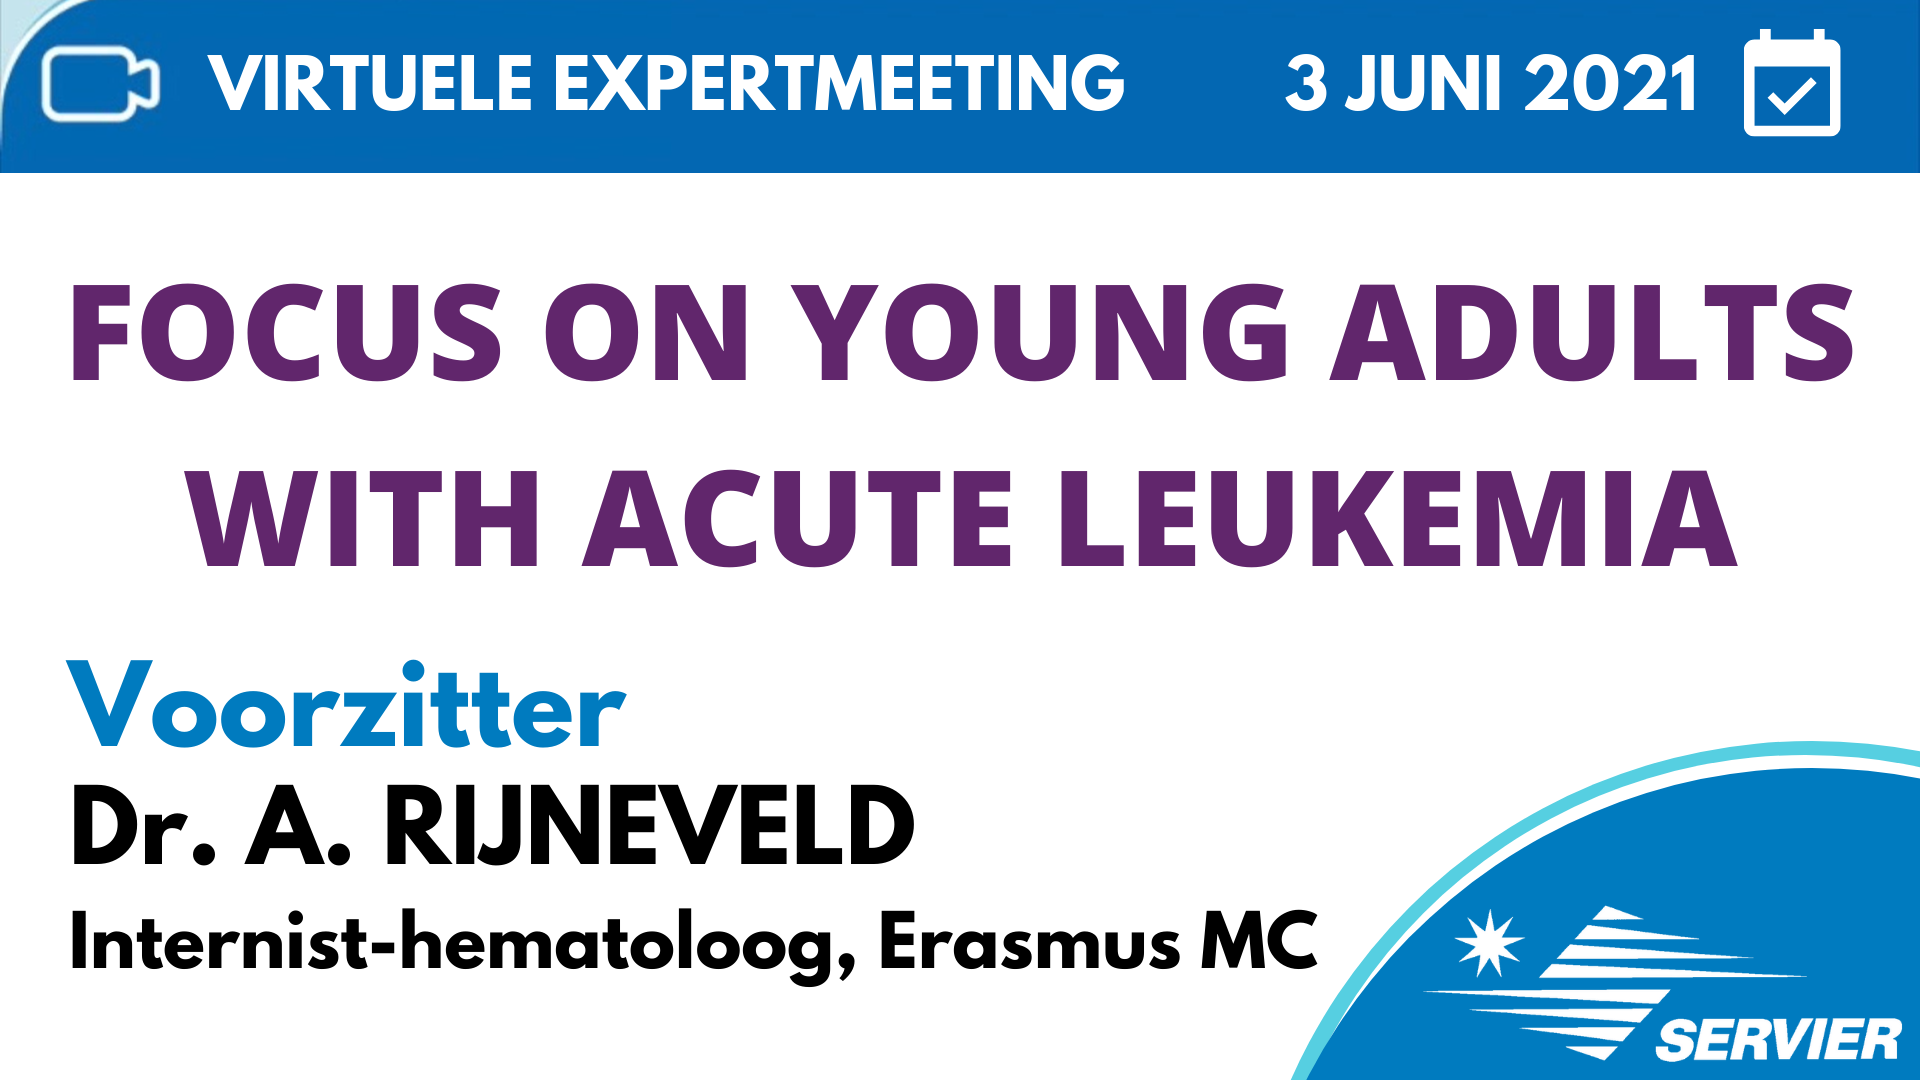 AYA care network focus on young adults with acute leukemia virtuele meeting videocast servier